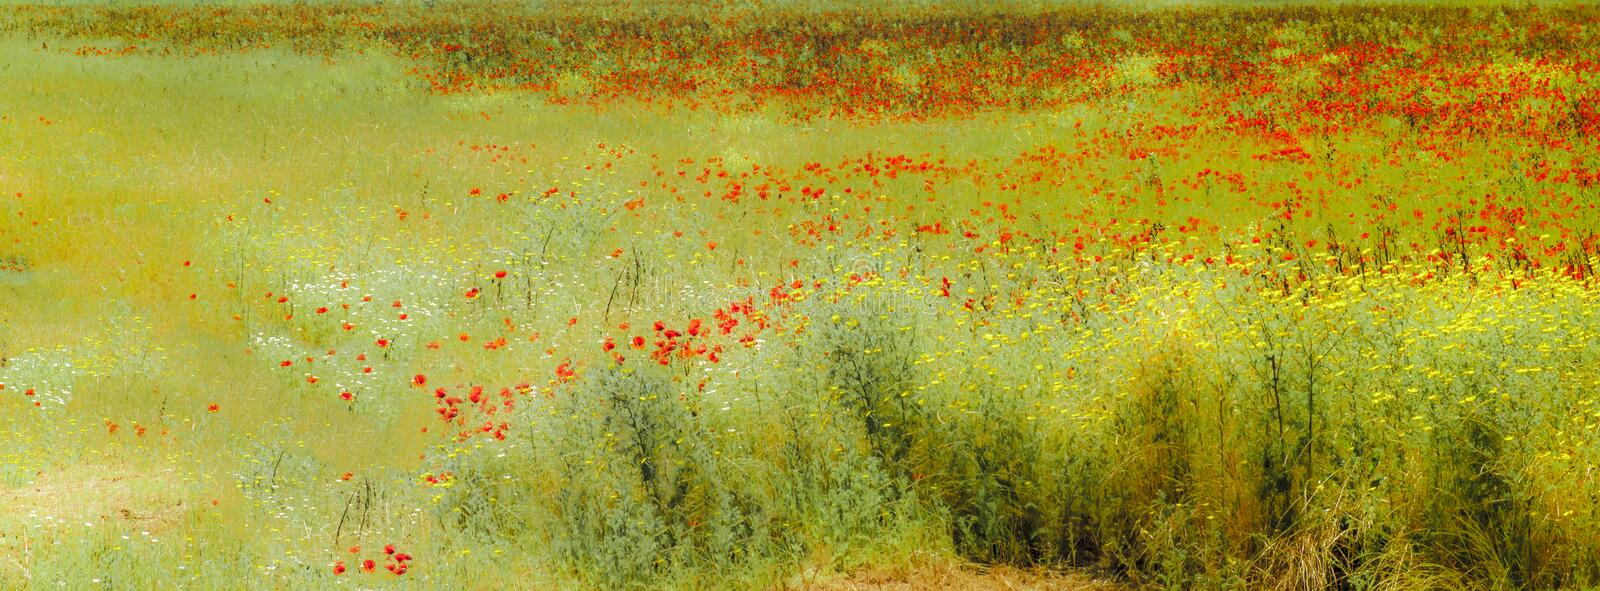 Poppies on summer meadow. Summer meadow with red poppies - soft light stock photo